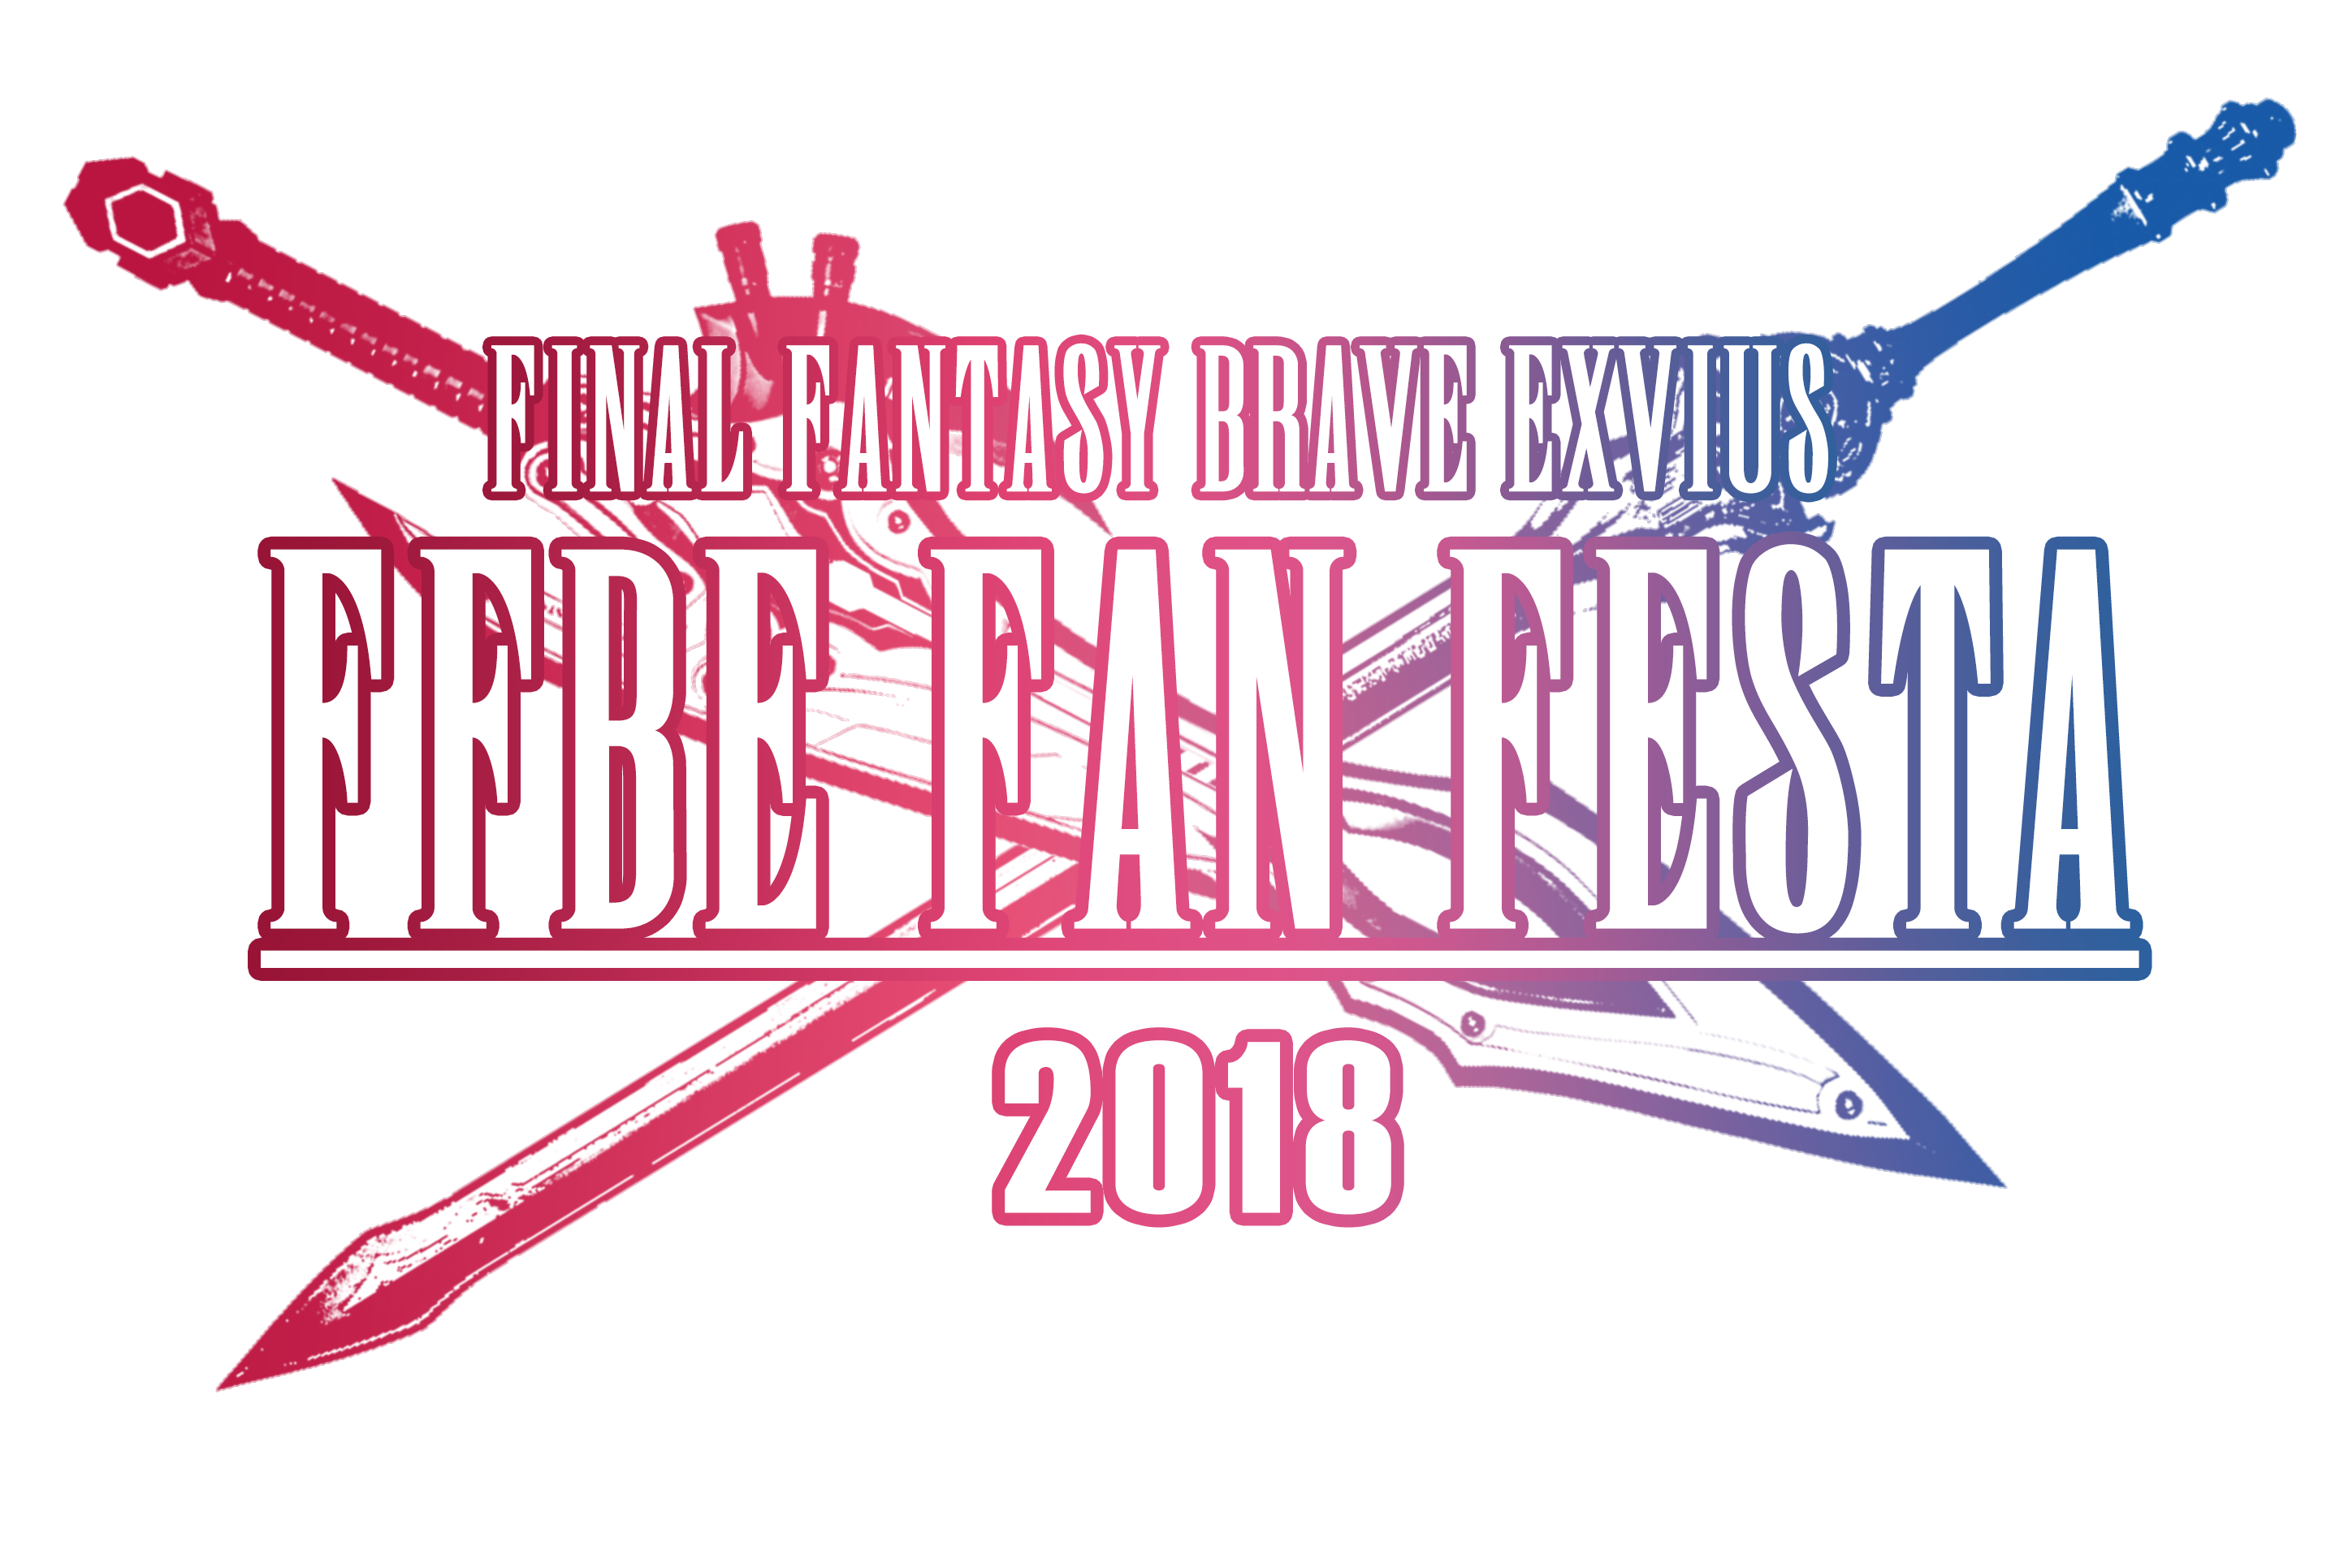 Tickets for FINAL FANTASY BRAVE EXVIUS Fan Festa 2018 in Long Beach from ShowClix